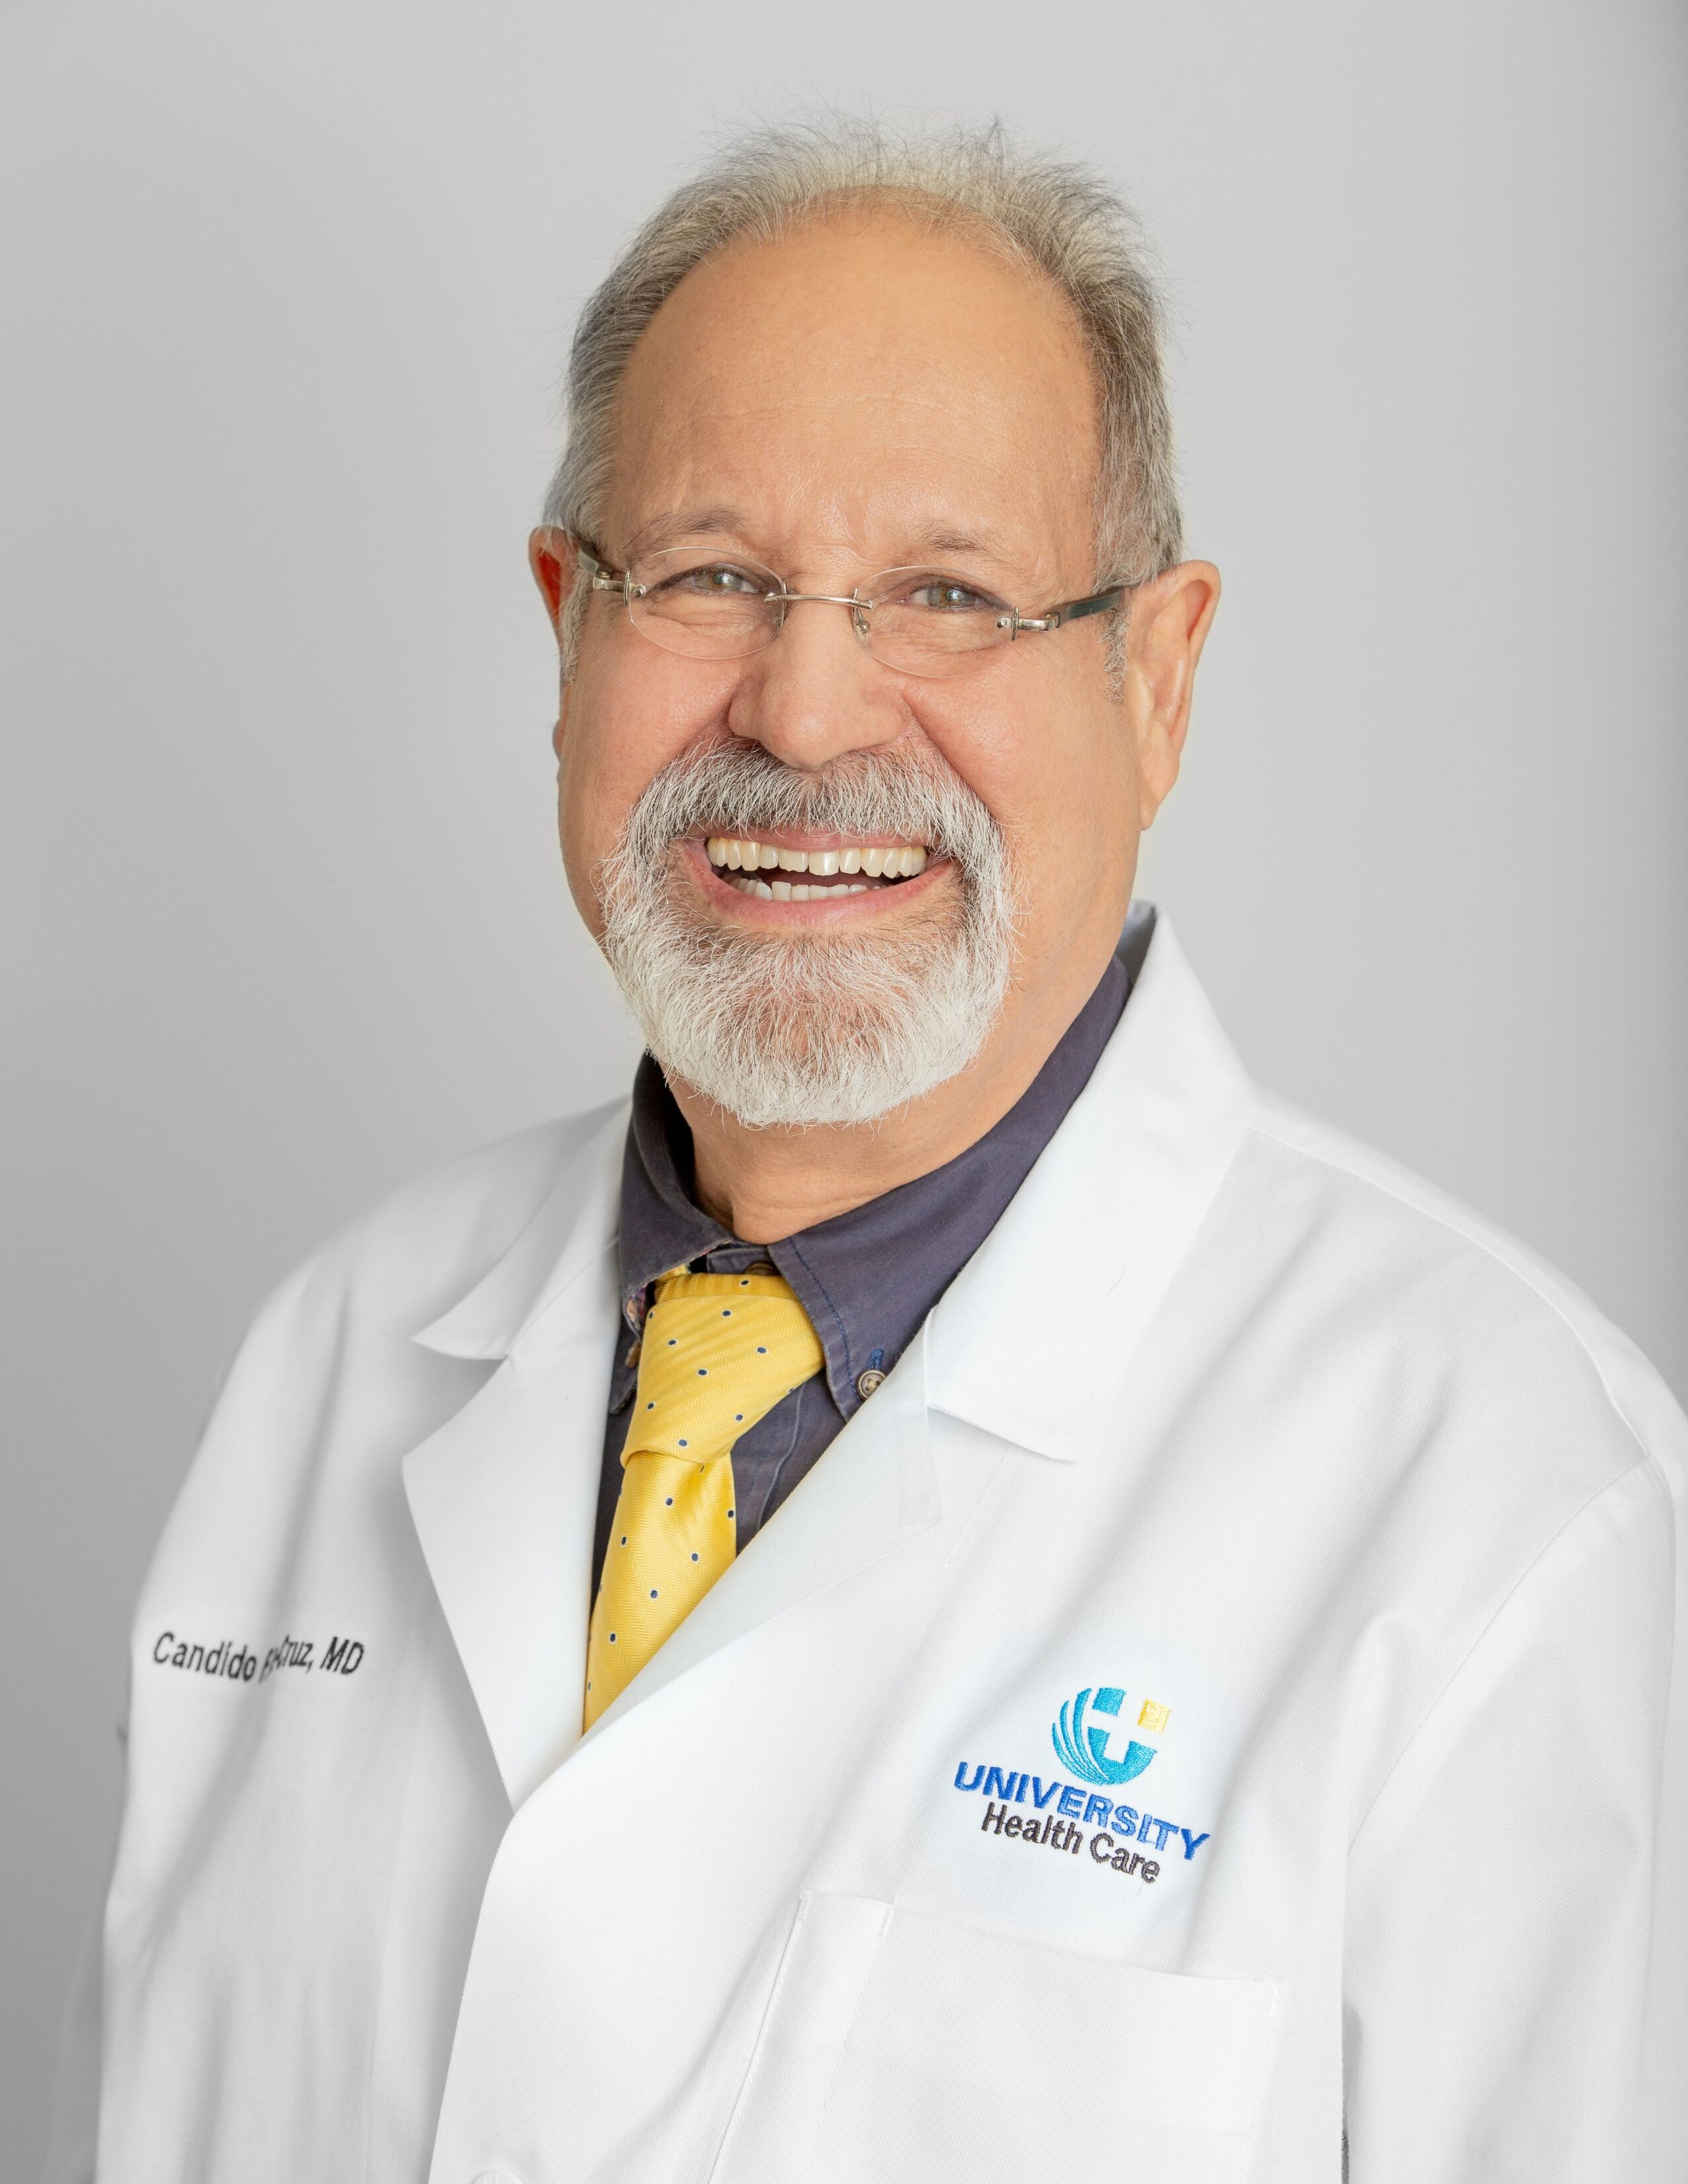 Candido Diaz-Cruz, MD - North Kendall